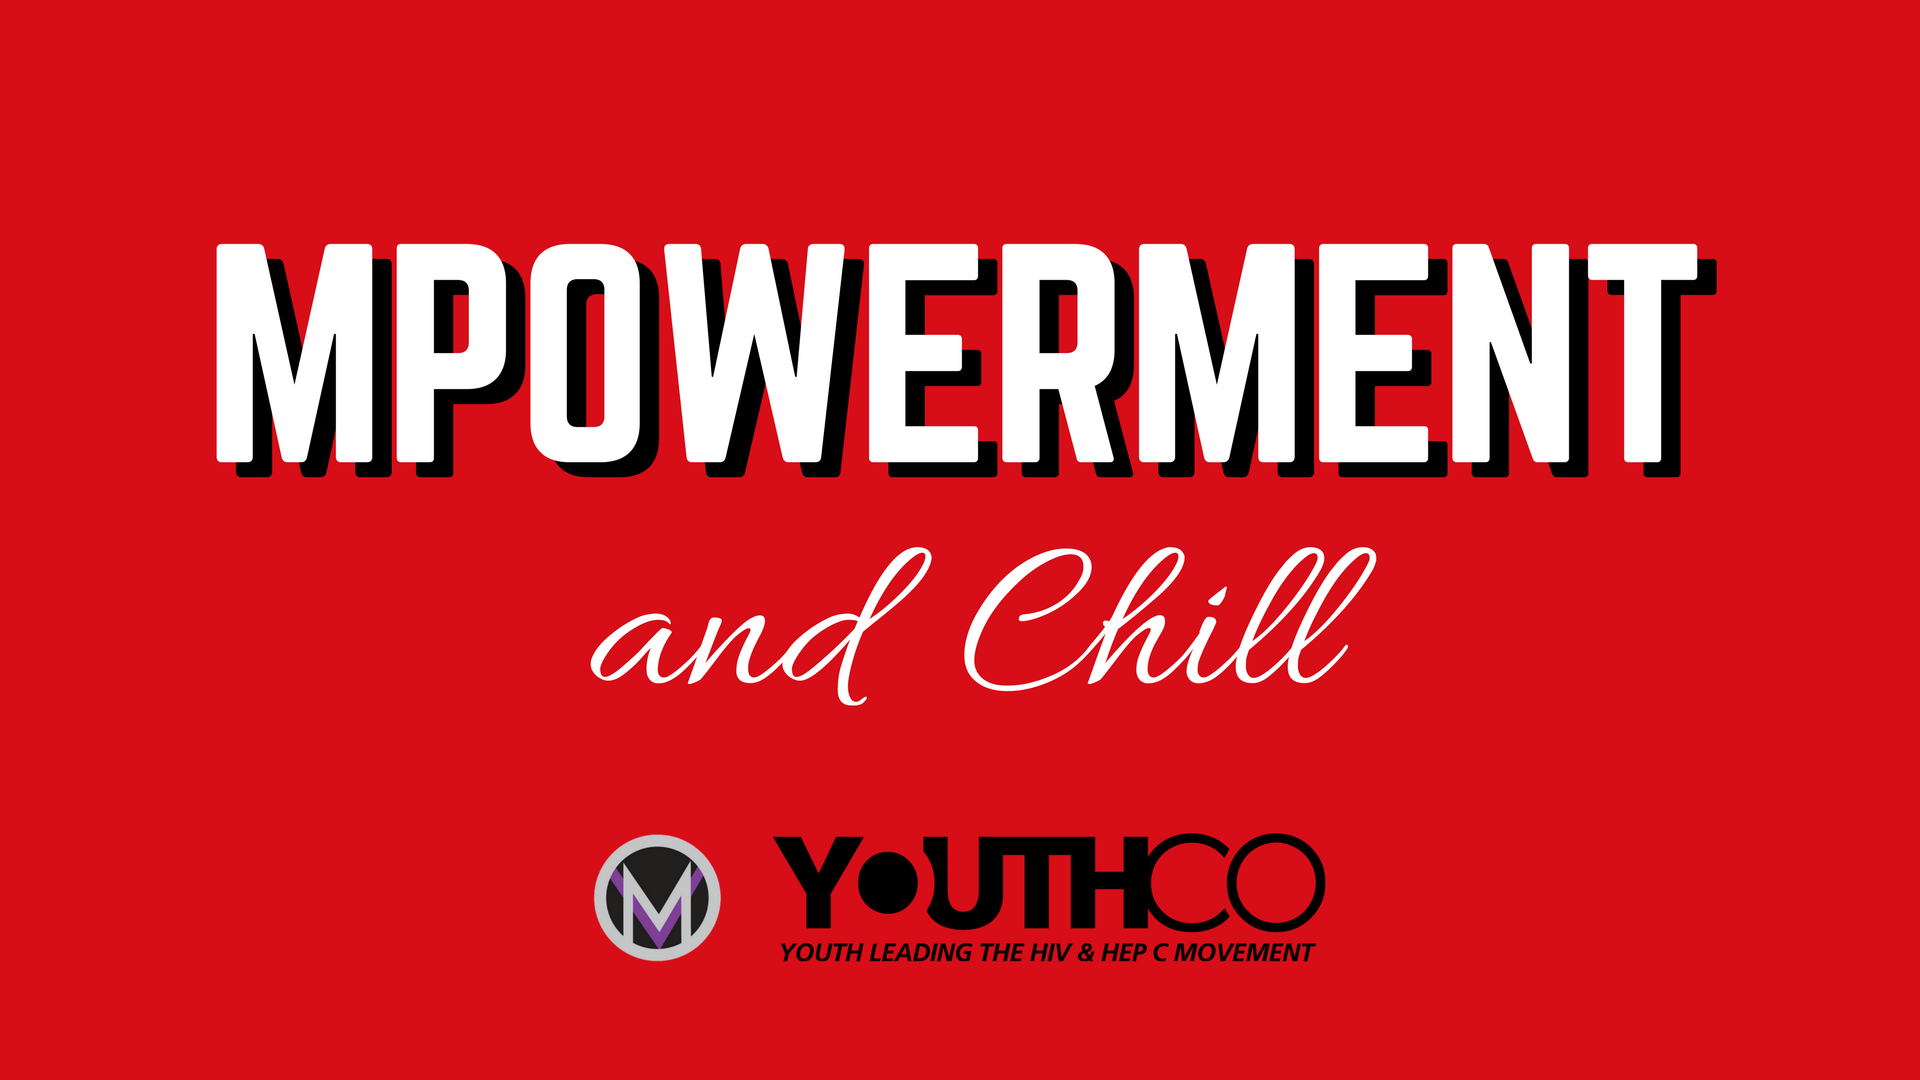 Facebook_Cover_Mpowerment_and_Chill.png